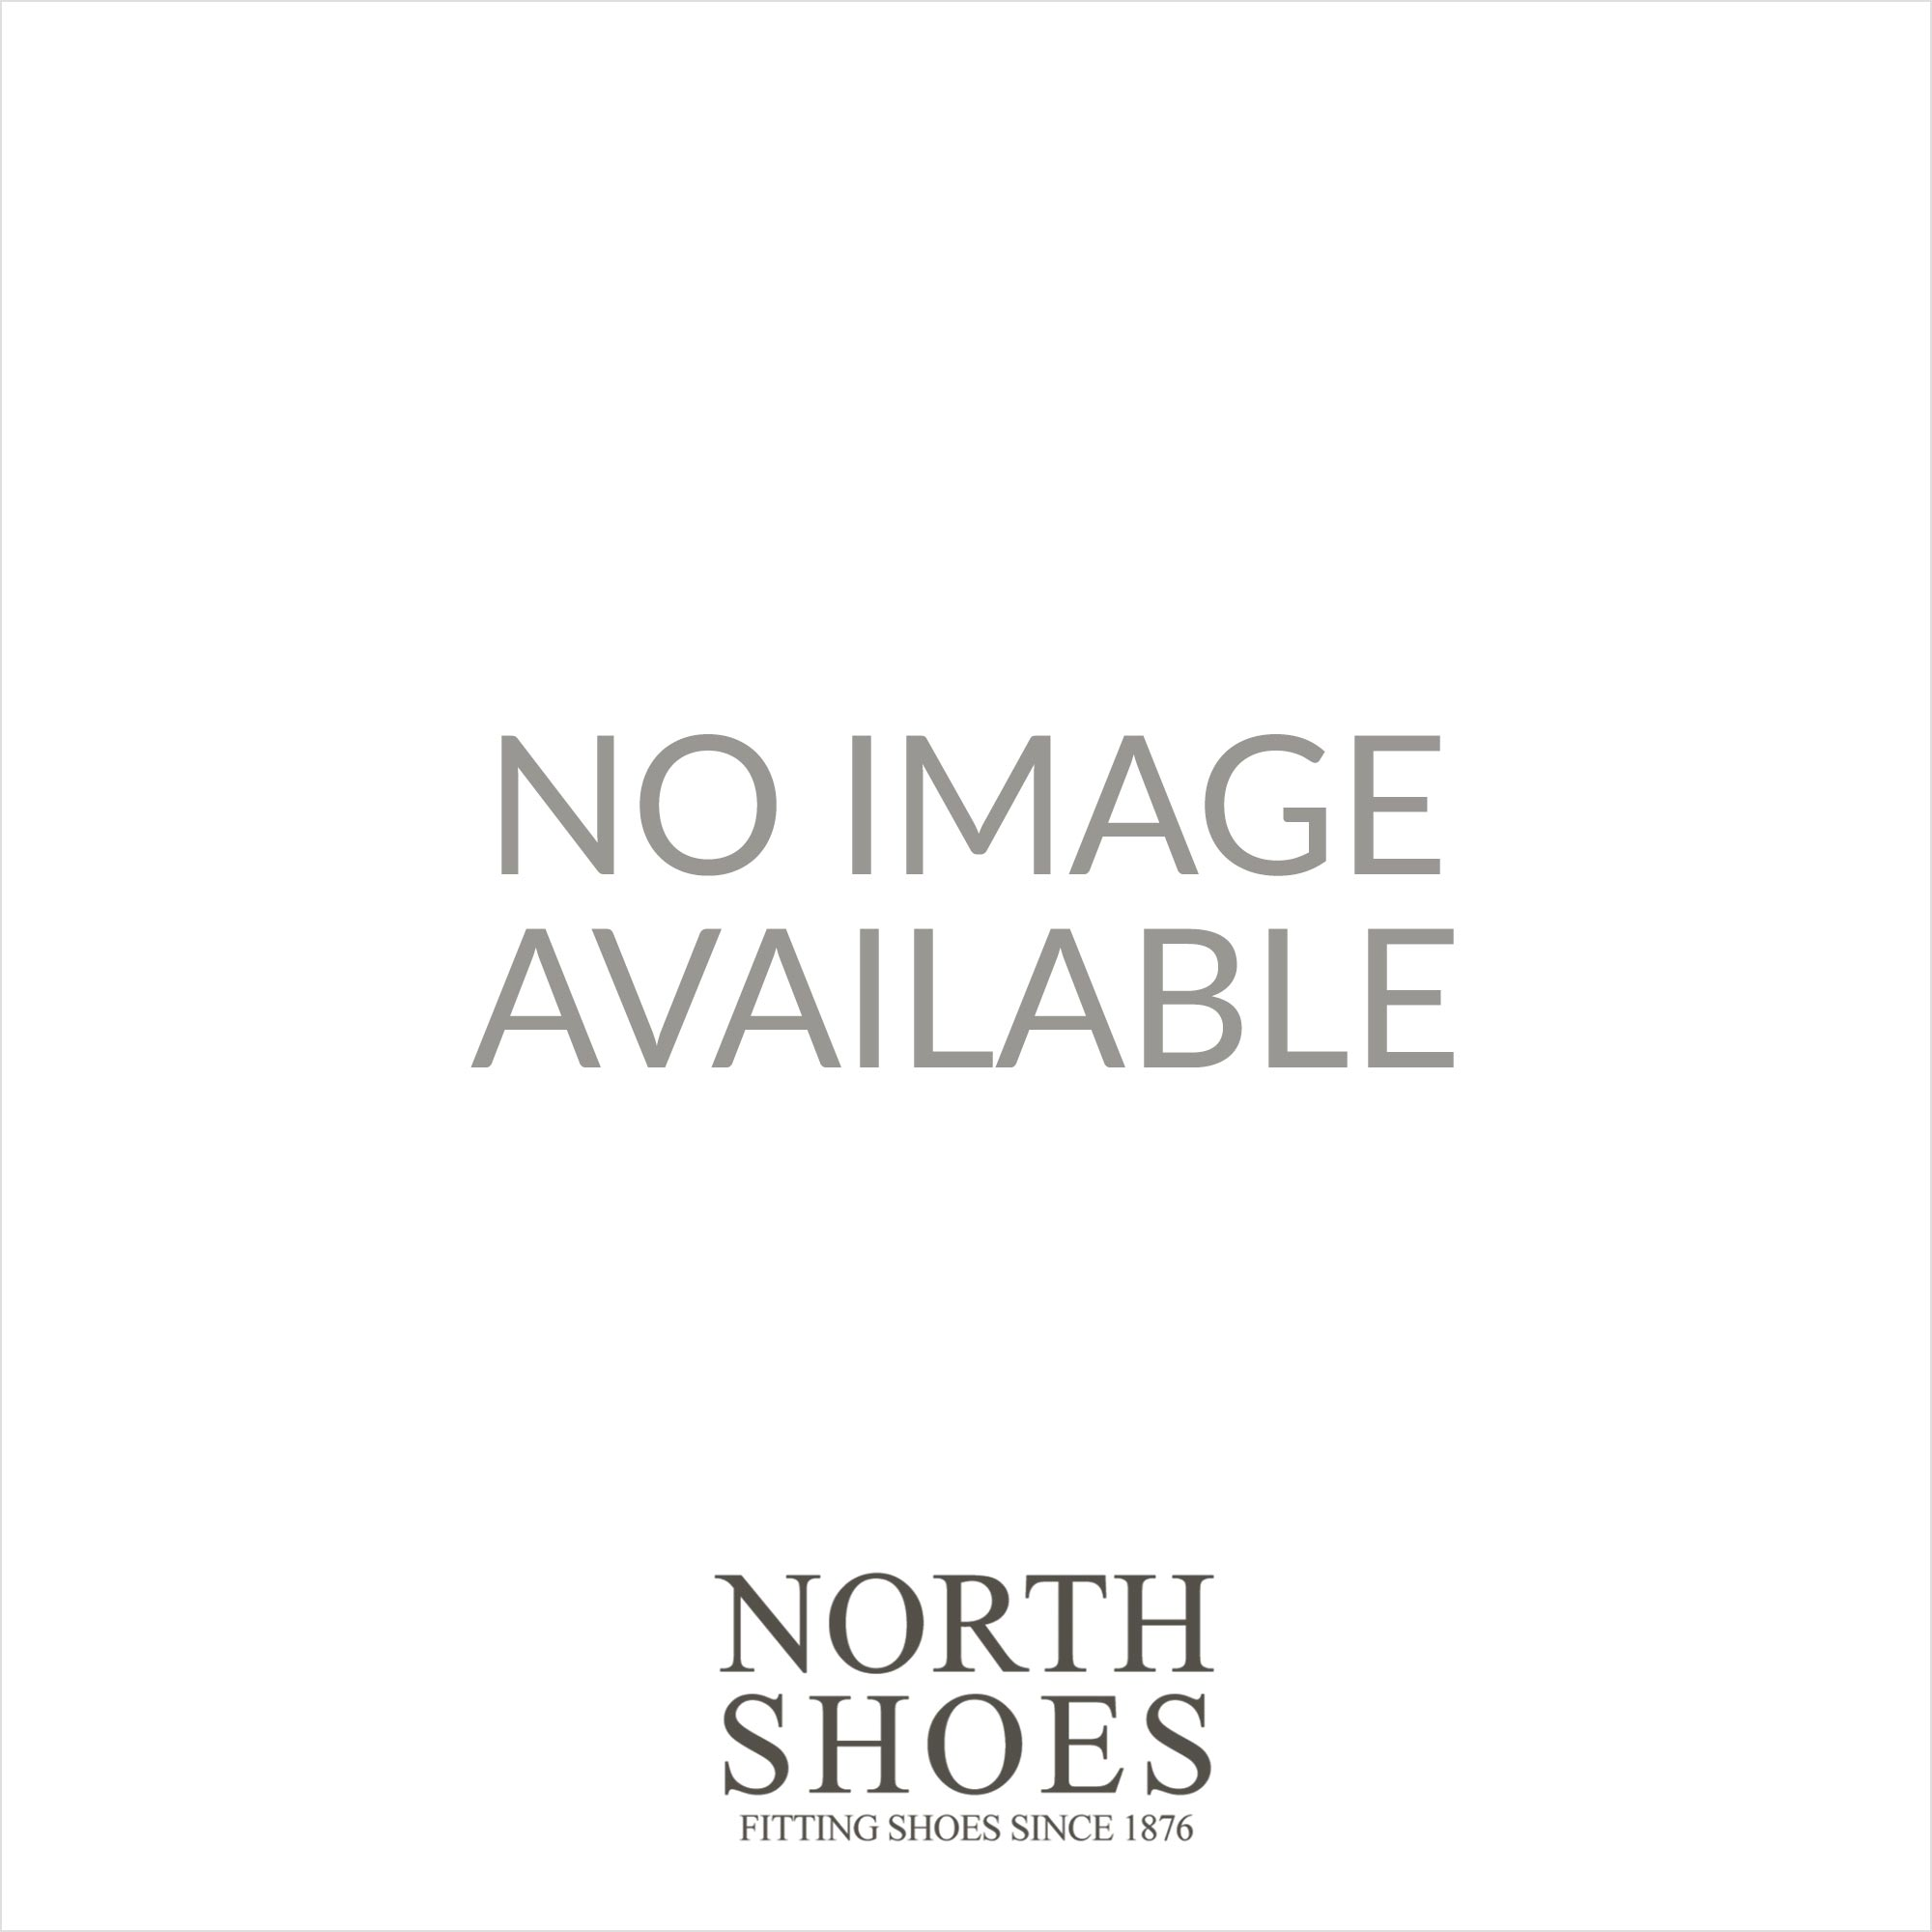 Terra-1 Taupe Multi Coloured Striped Womens Espadrille Wedge Sandal